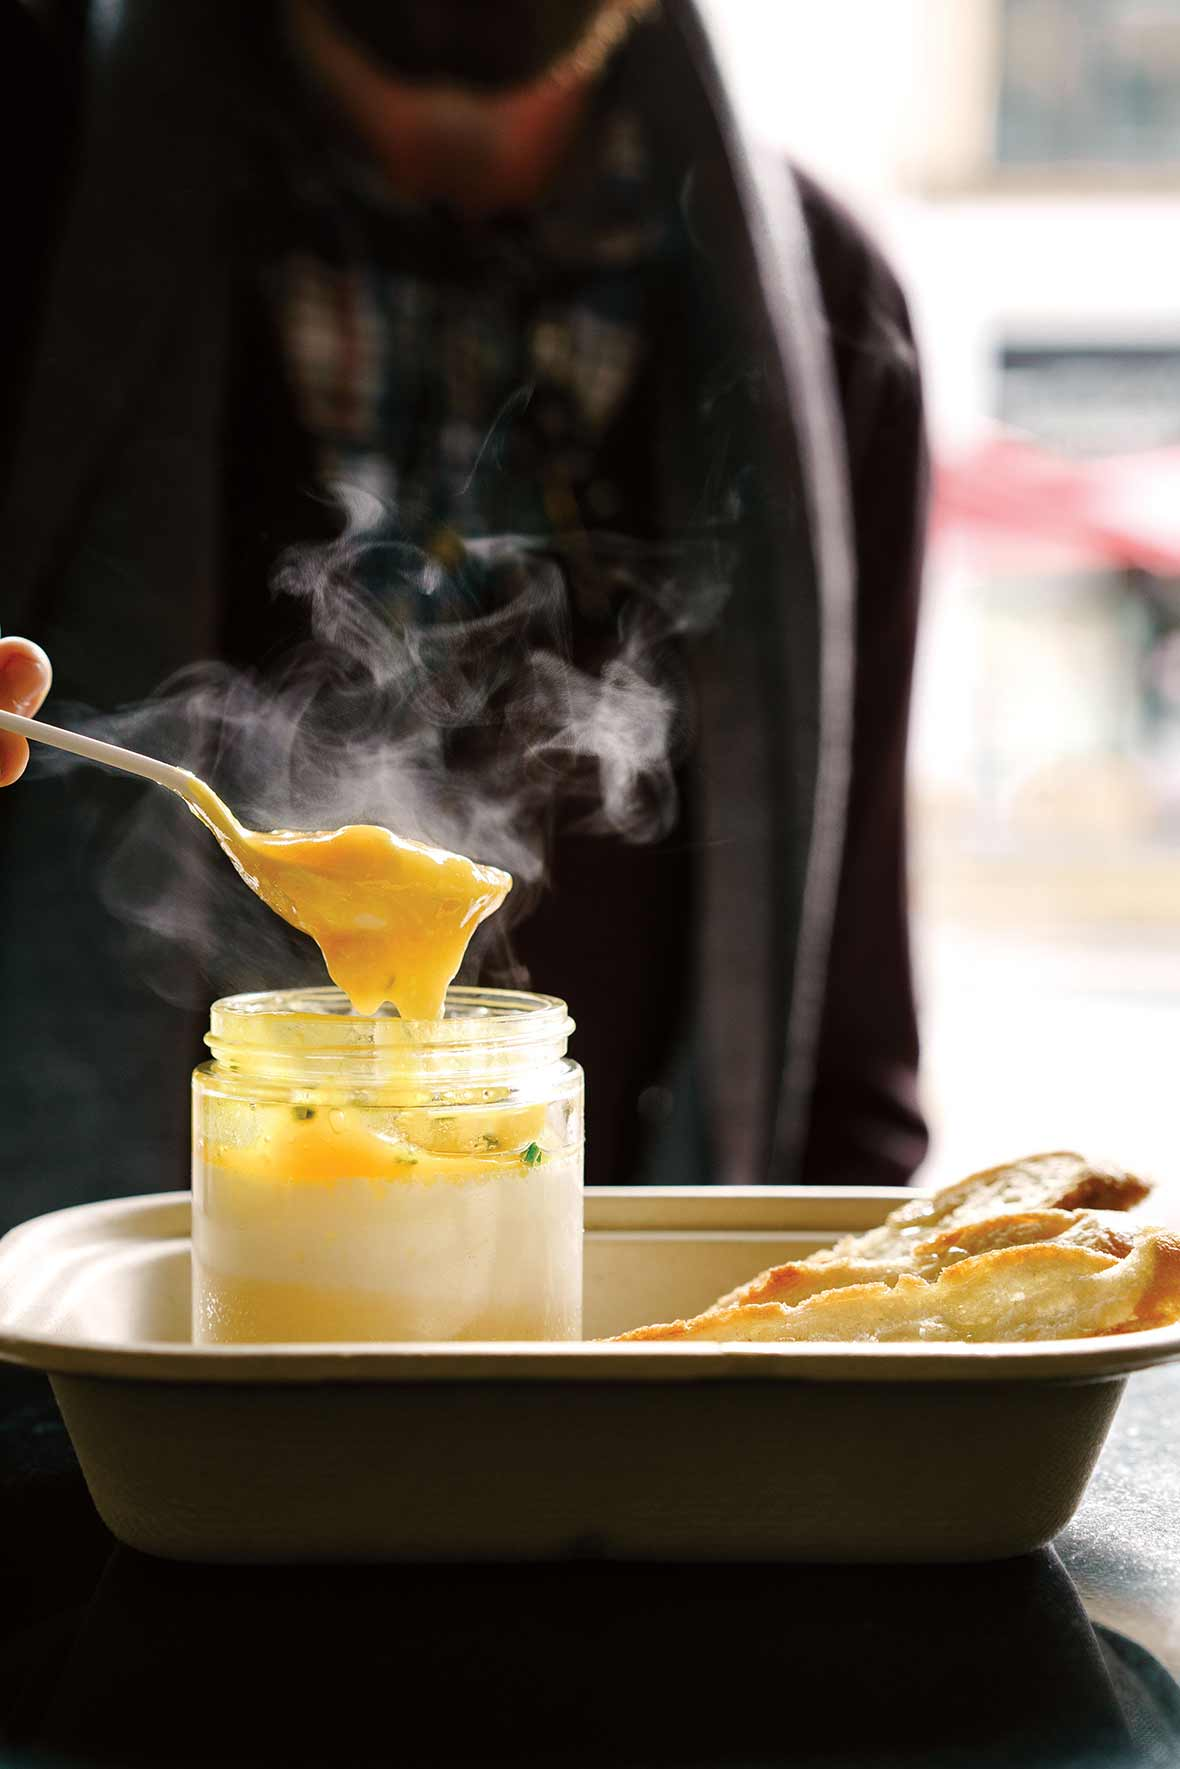 Person with a spoon digging into a glass jar of coddle eggs with potato puree underneath, slice of bread nearby